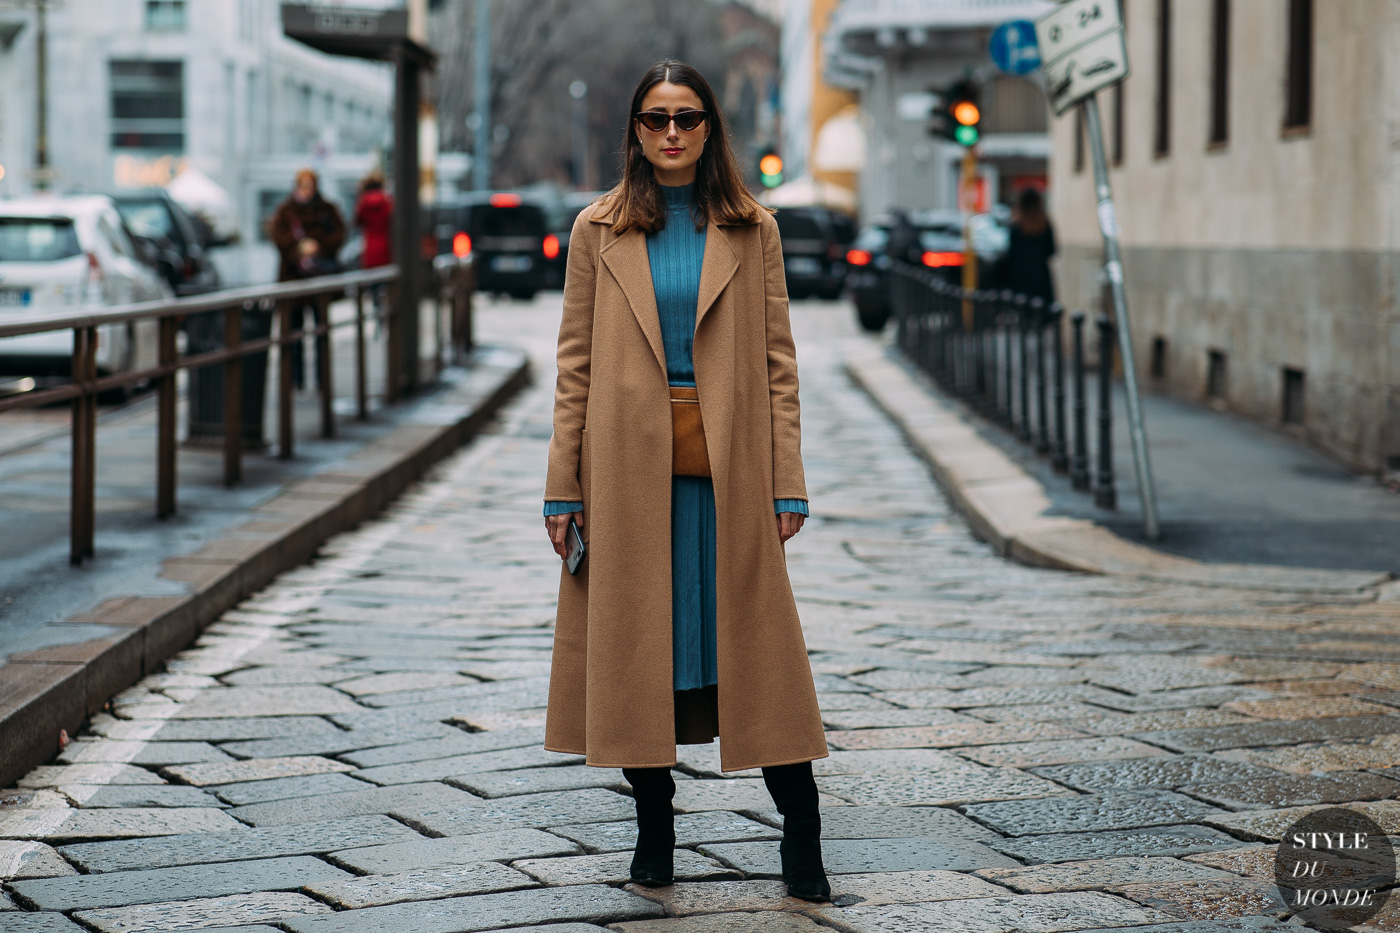 Julia Haghjoo by STYLEDUMONDE Street Style Fashion Photography FW18 20180223_48A6792